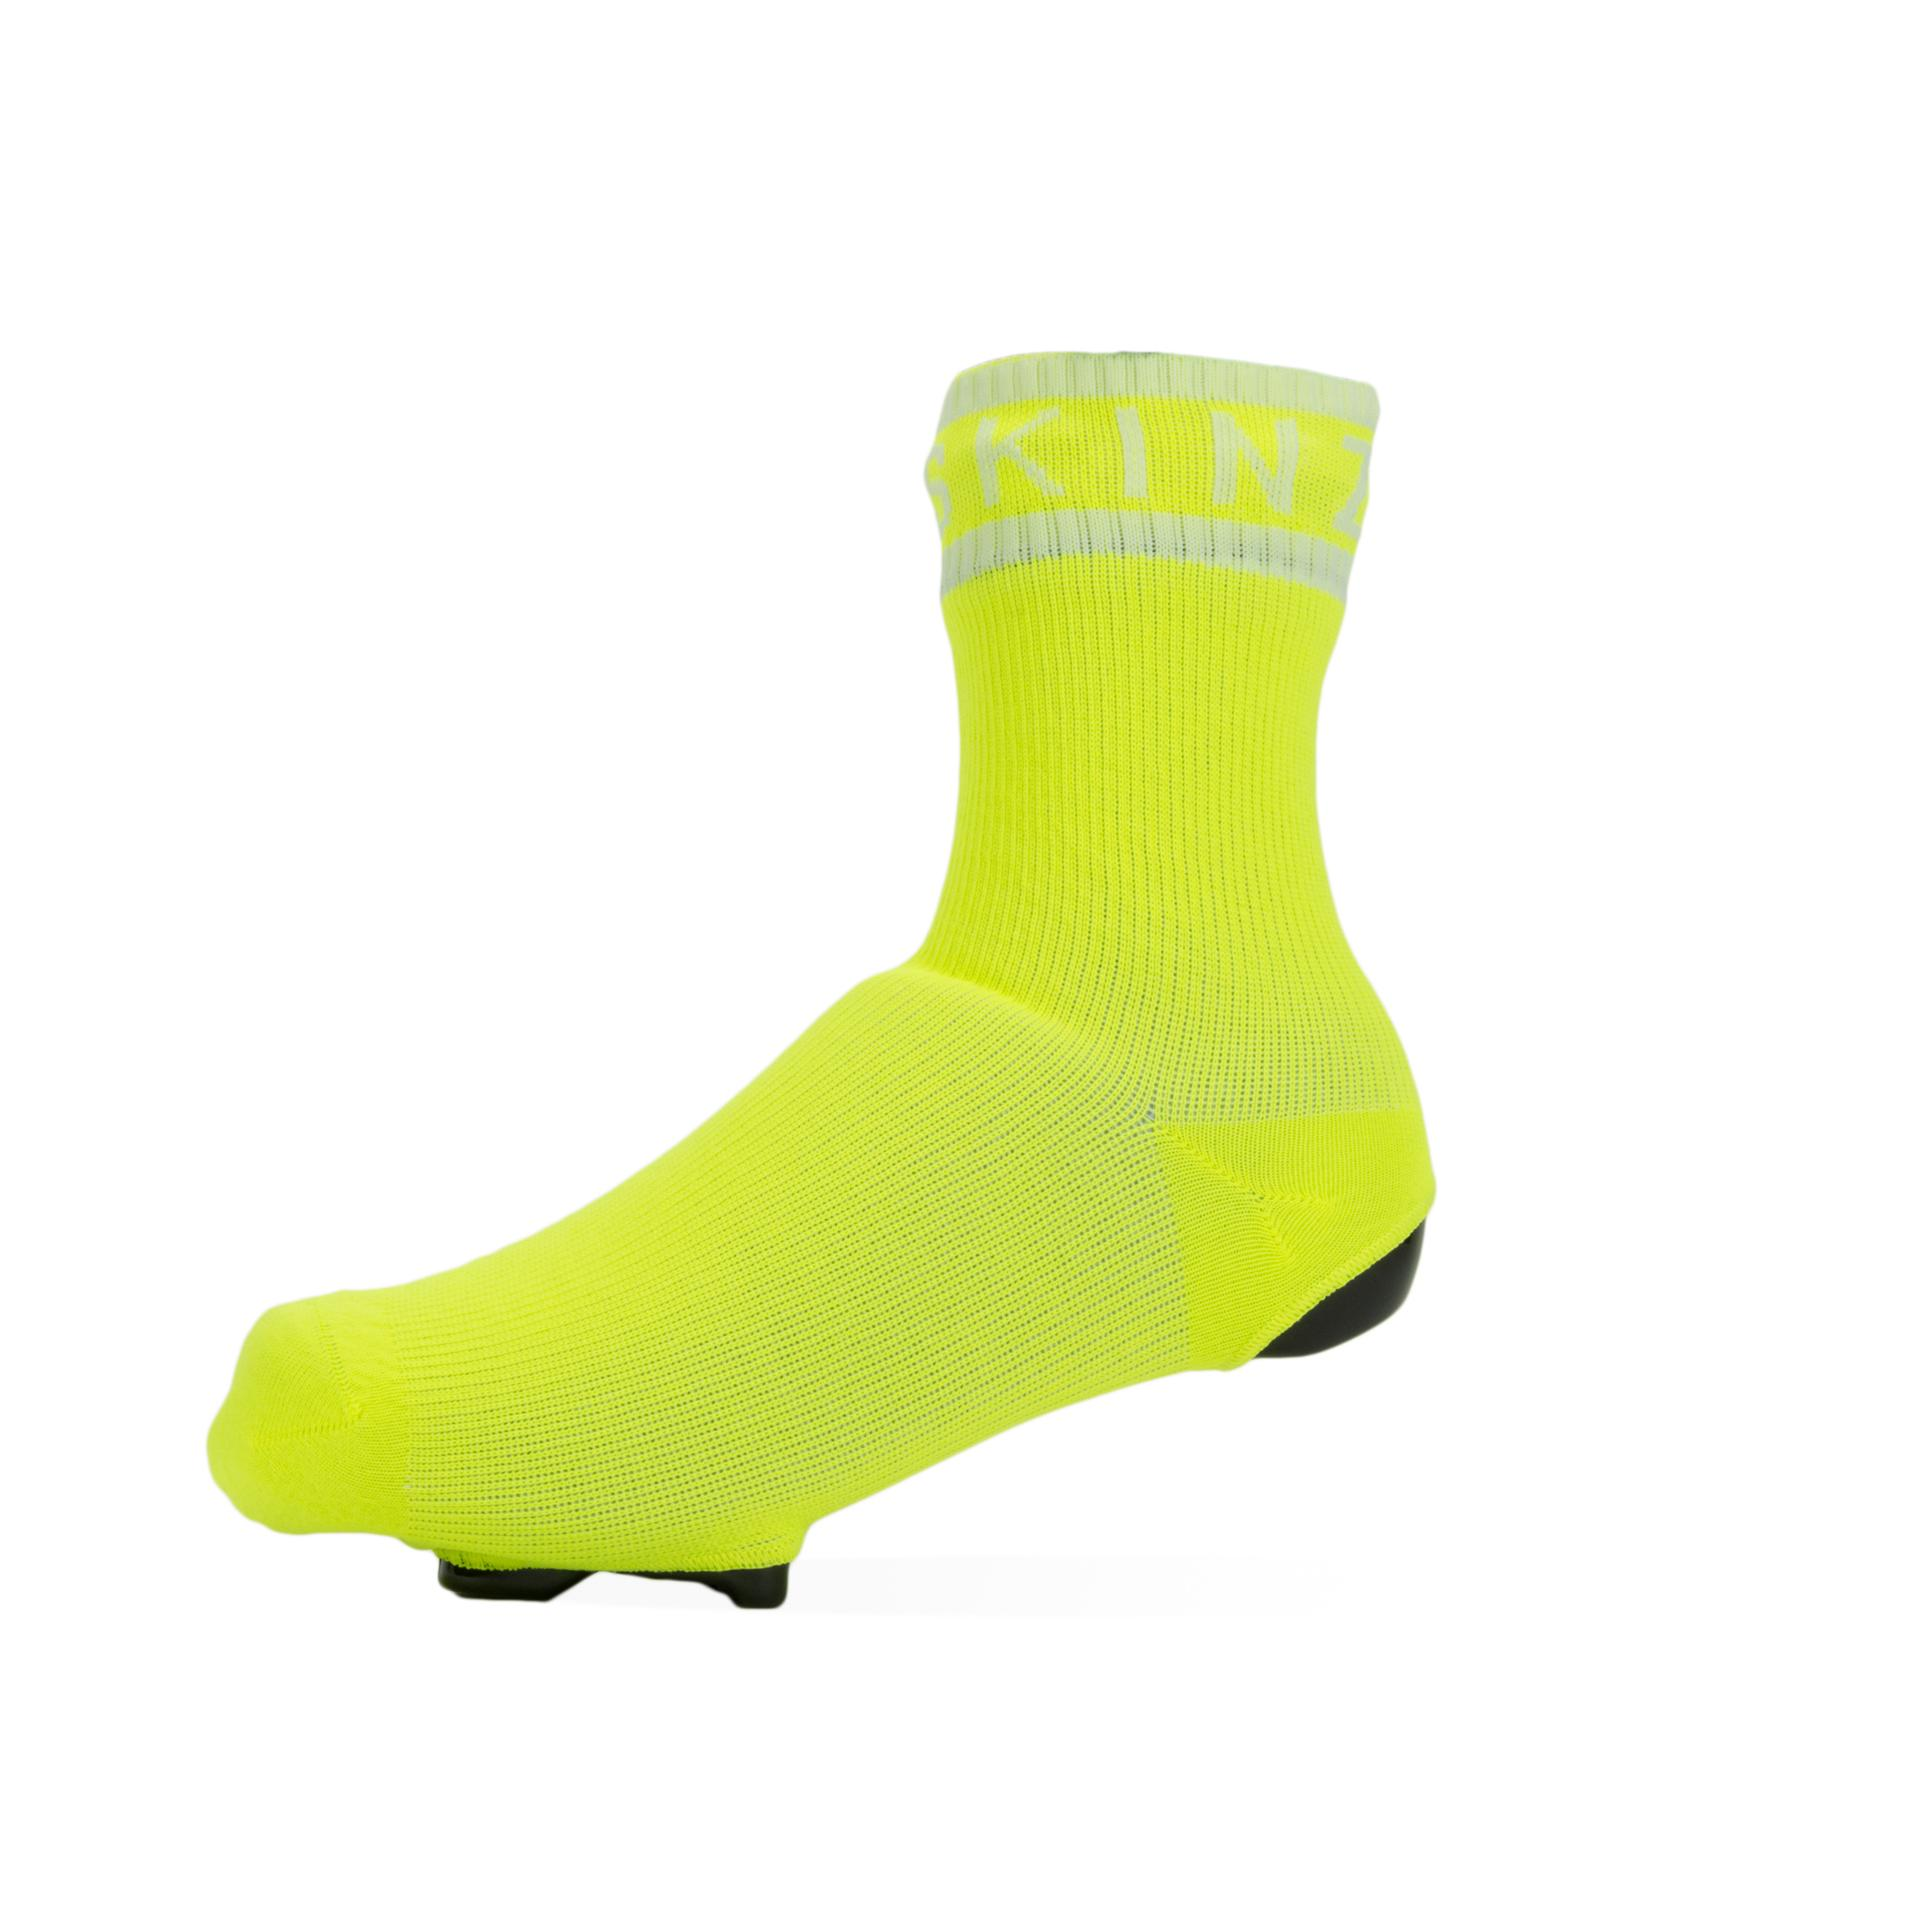 Afbeelding Sealskinz Fietssokken waterdicht voor Heren Fluo Wit / Waterproof All Weather Cycle Oversock Neon Yellow/White